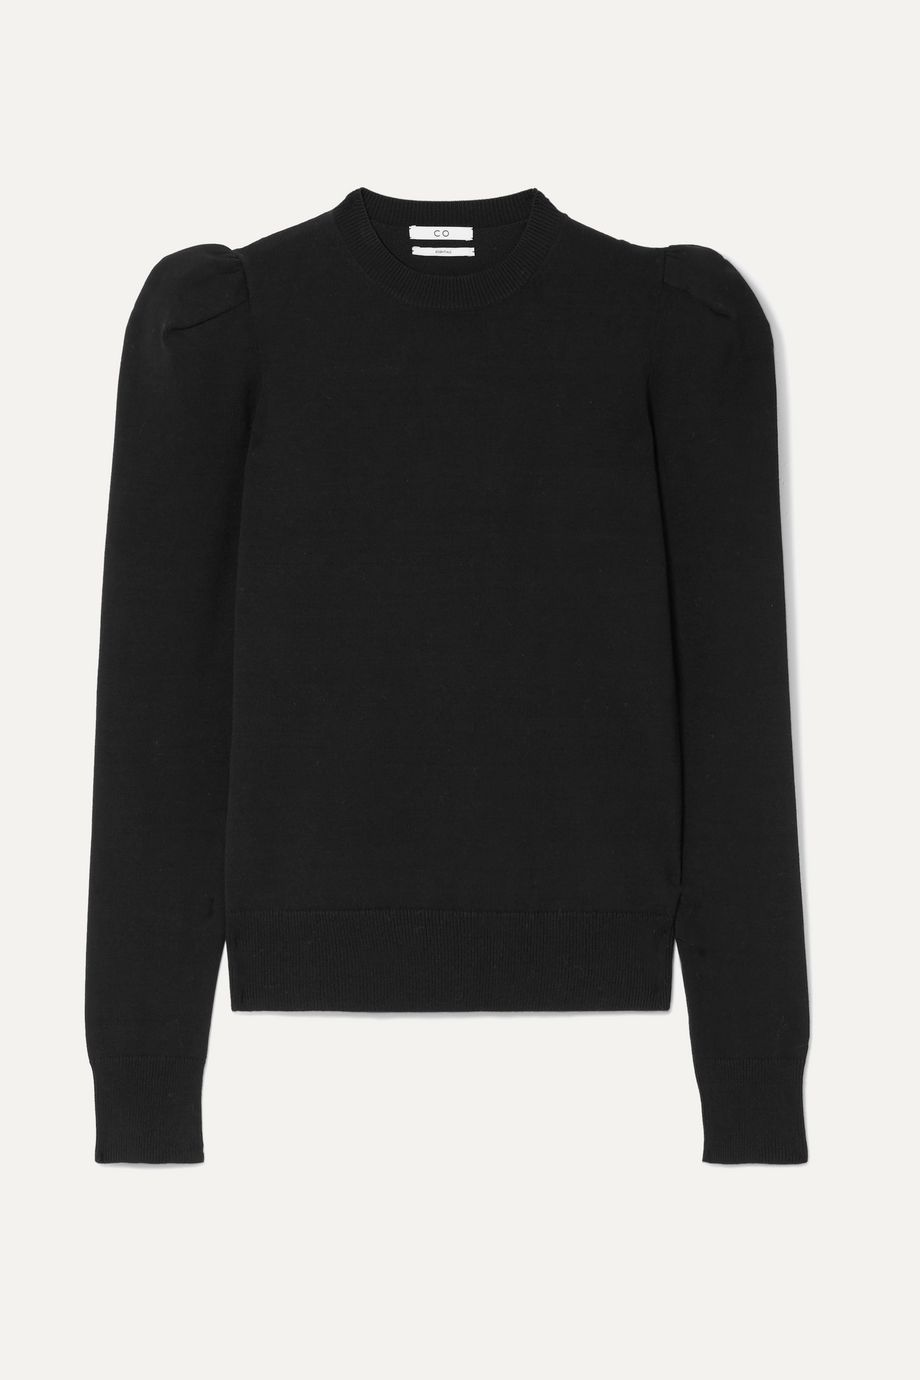 Co Knitted sweater